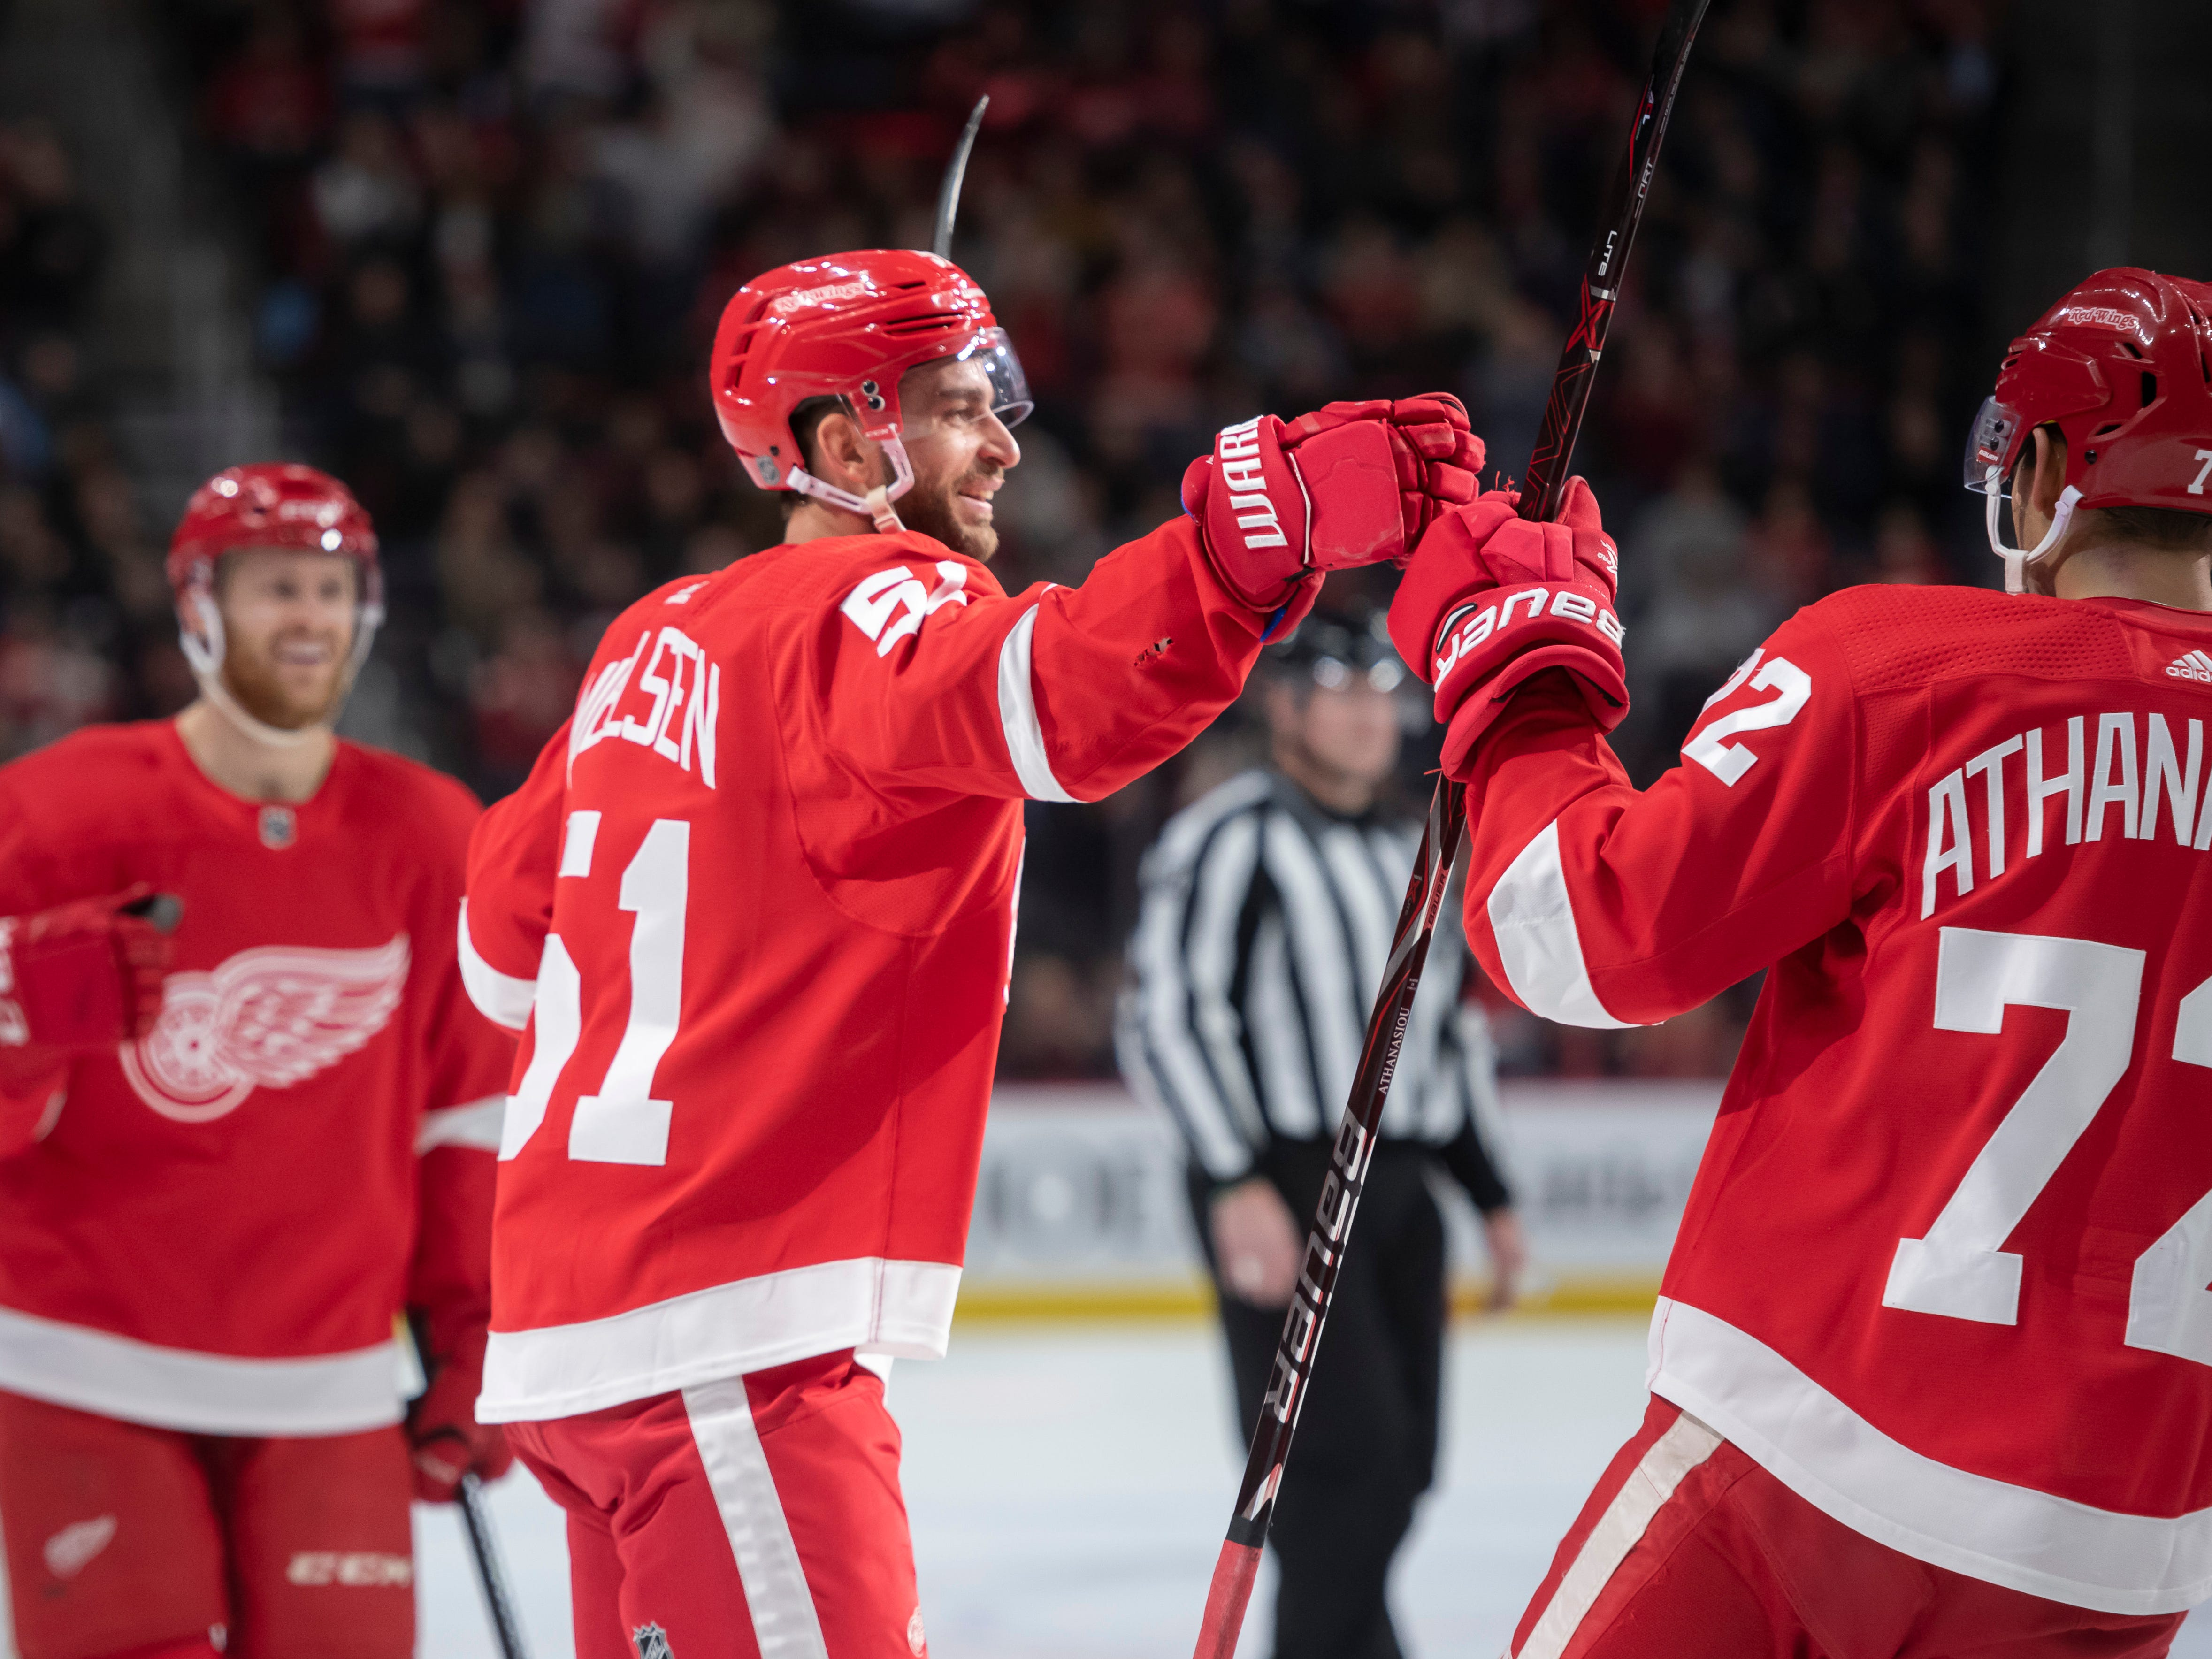 Detroit center Frans Nielsen celebrates his first period goal to make the score 2-0.